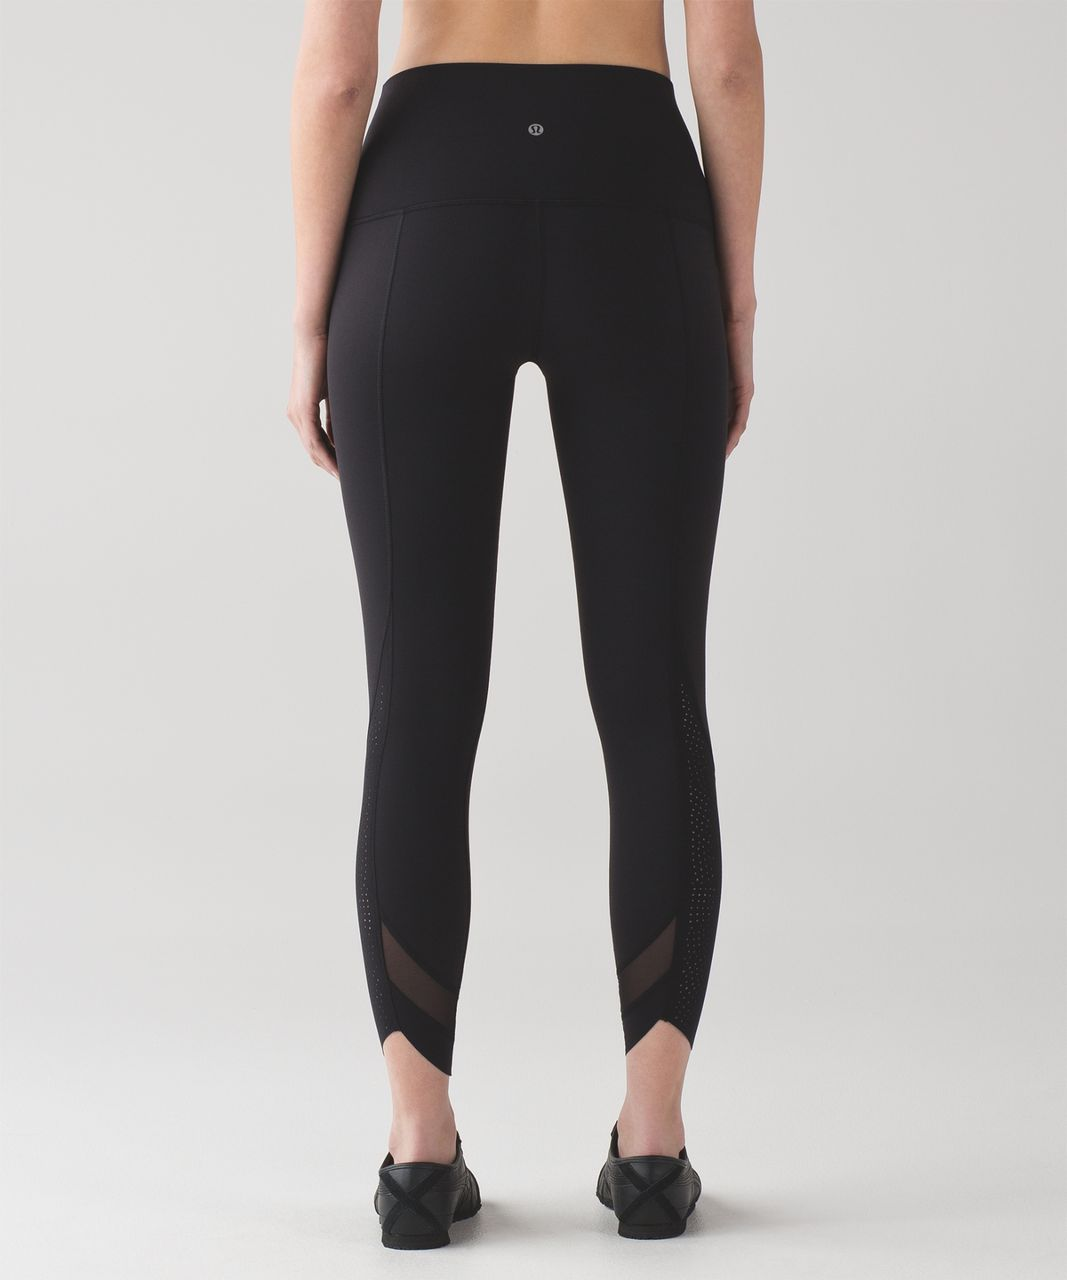 36660248db0631 Lululemon Wunder Under Pant (Hi-Rise) (Laser Cut) - Black - lulu fanatics